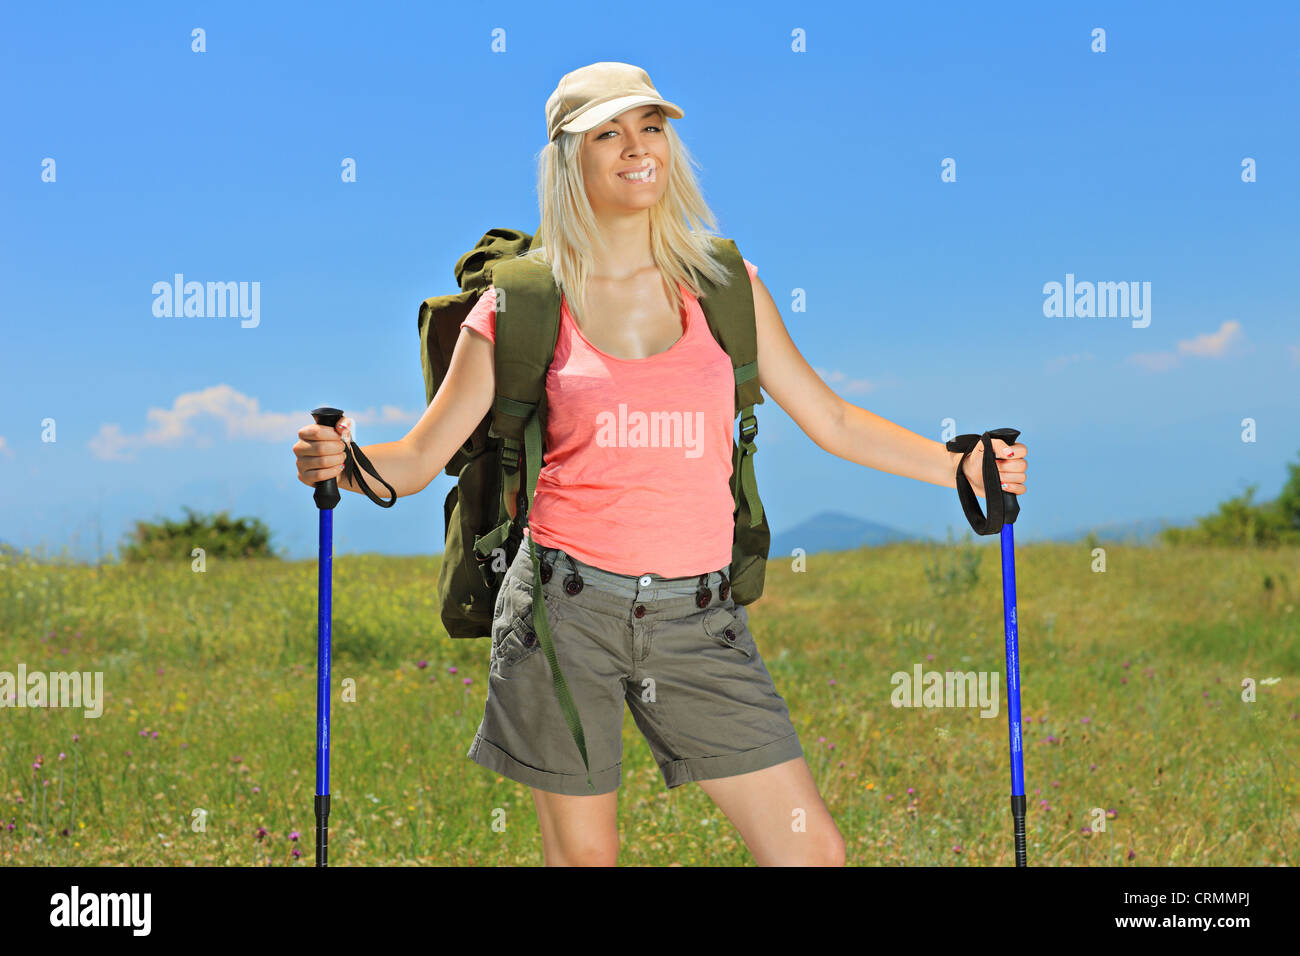 A smiling woman posing with backpack and hiking poles posing outdoor - Stock Image